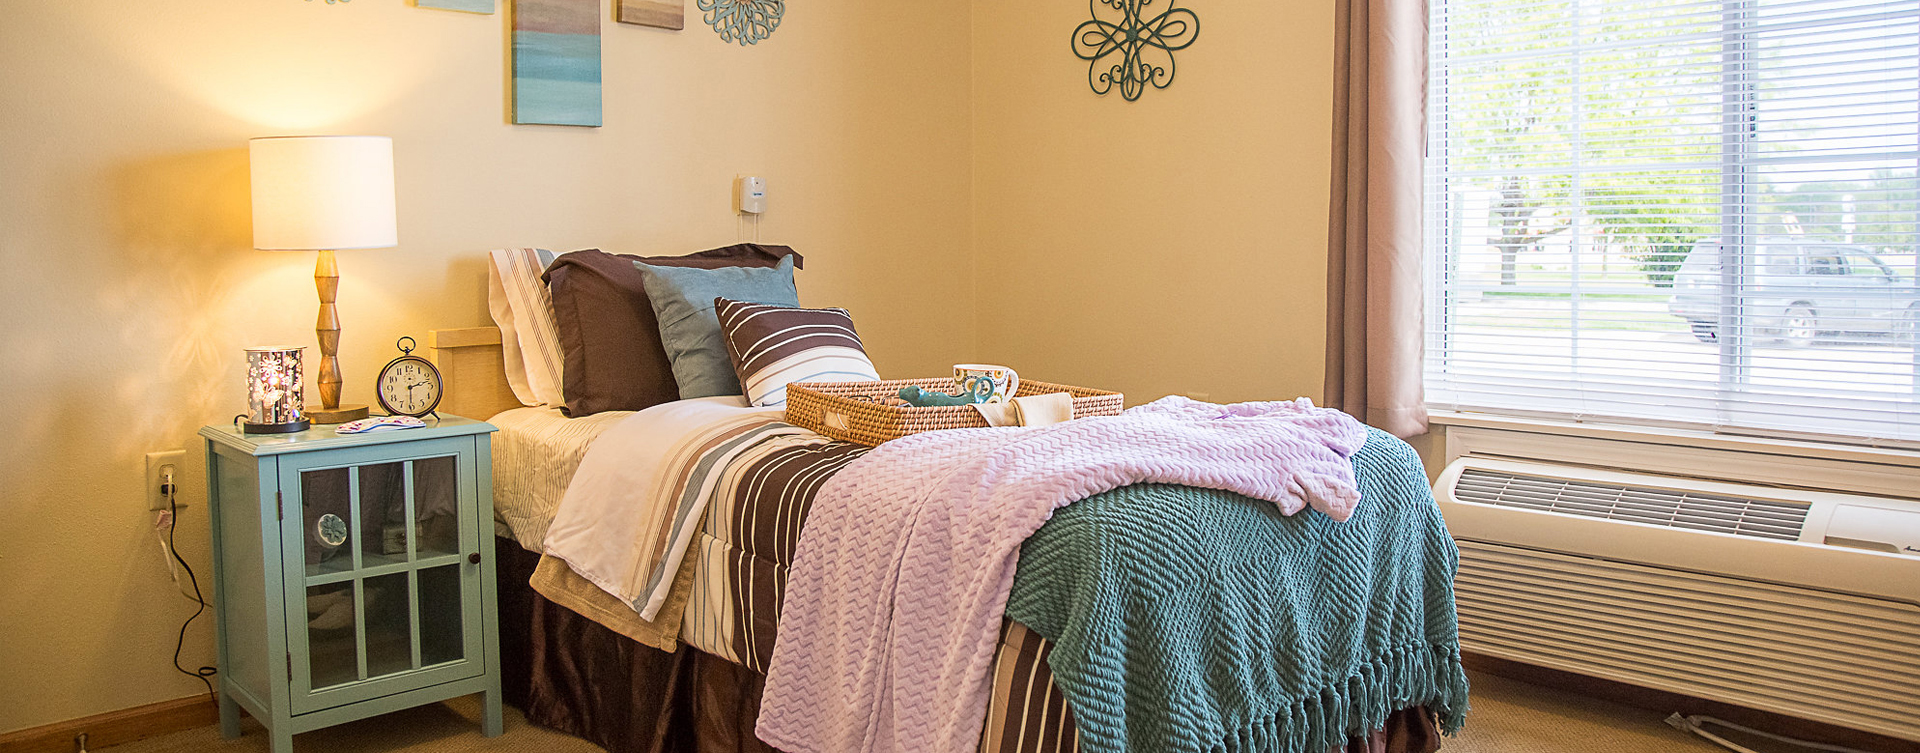 Get a new lease on life with a cozy apartment at Bickford of Davenport